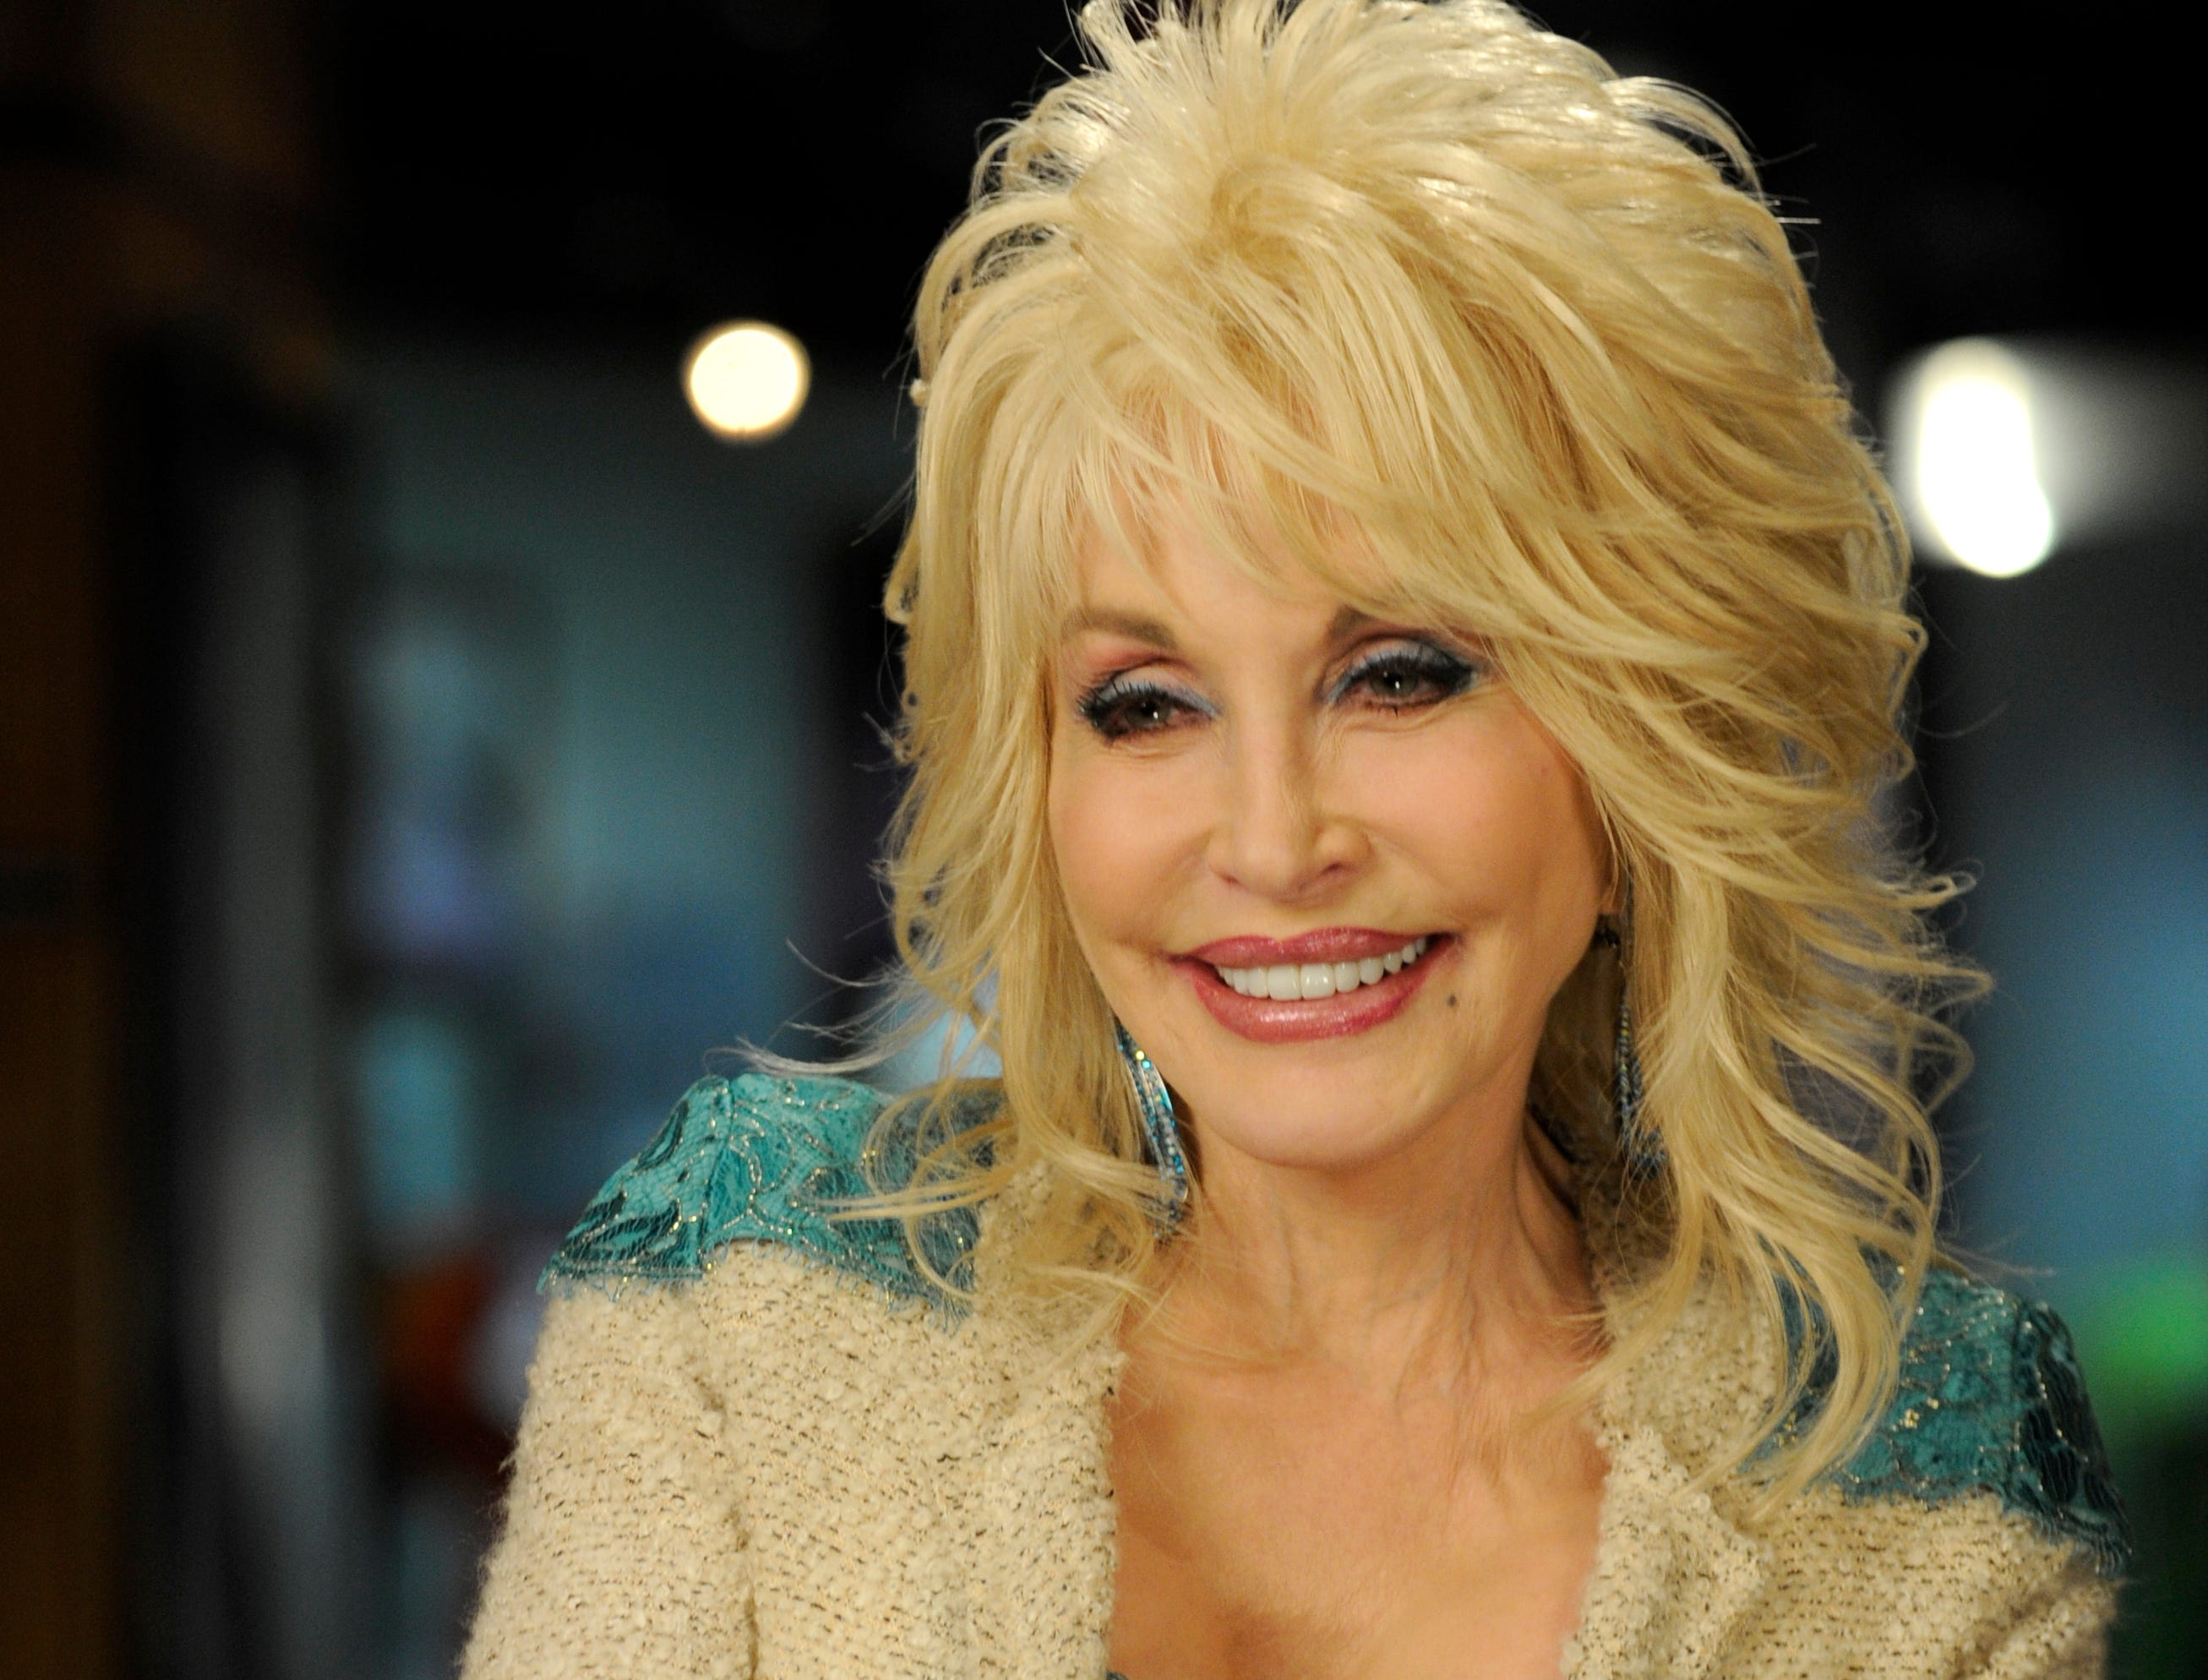 Dolly Parton talking about her career and dreams for Dollywood at her 2013 season preview Friday, Mar. 22, 2013.